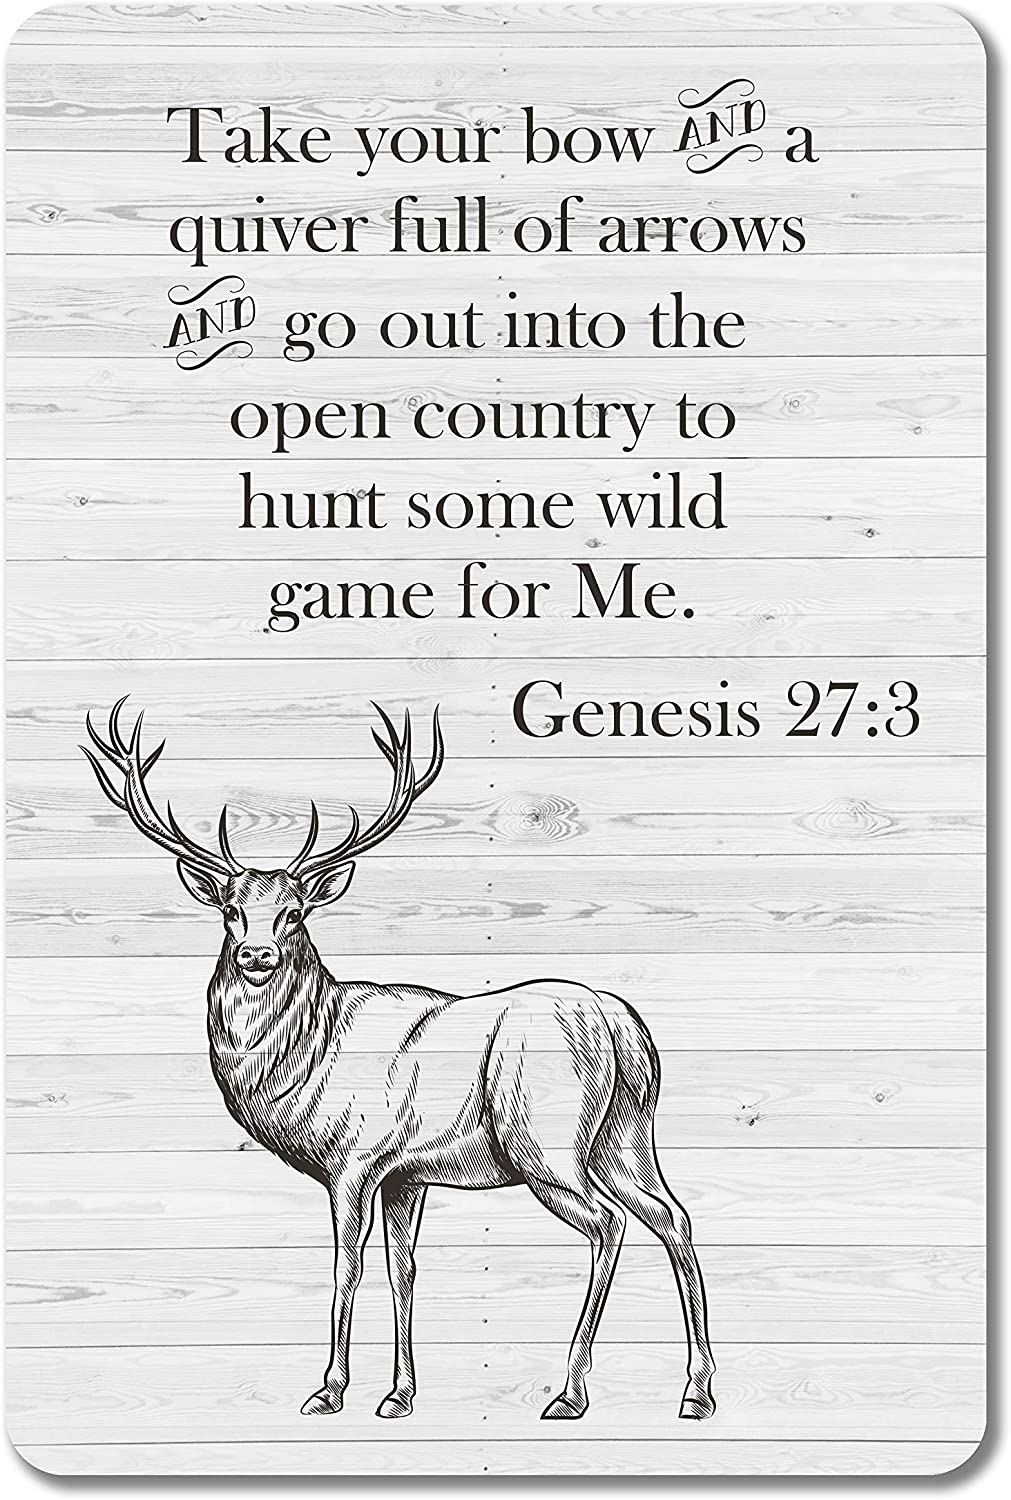 JP's Parcels Hunting Sign for Man Cave Decor-These Signs Have A Retro, Rustic, and Vintage Look and are Proudly Made in the USA JPTS148 Take your Bow and Quiver Genesis 27:3